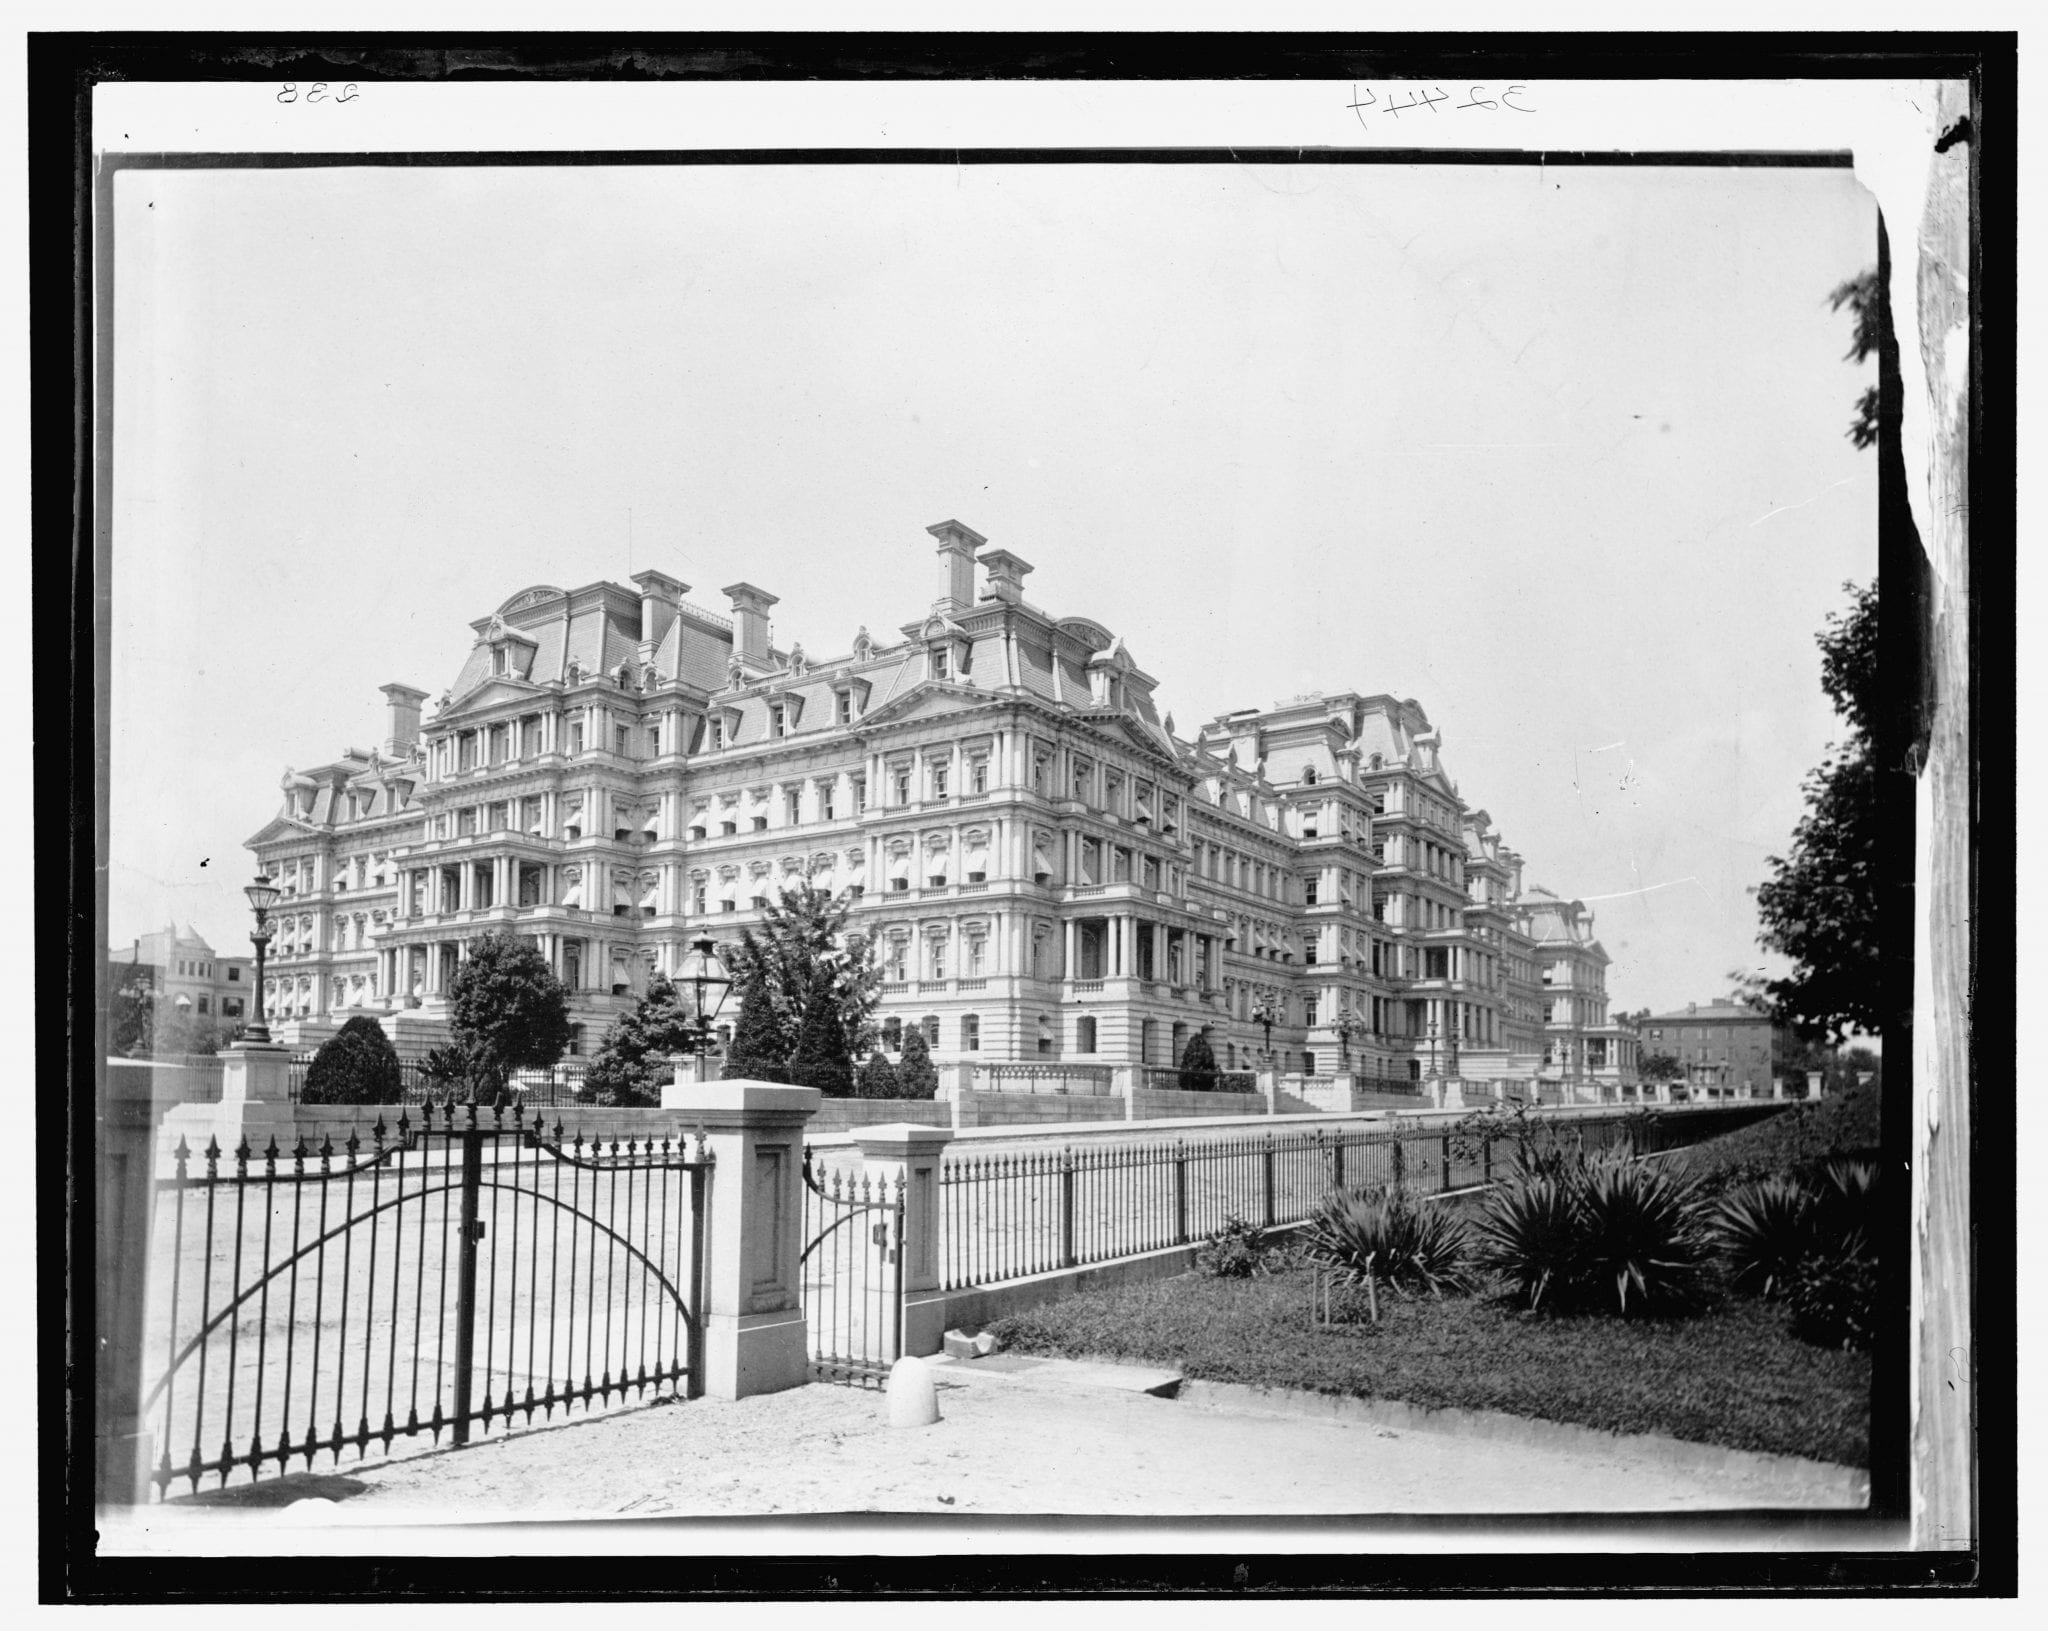 Rare 1890s Photo of Old Executive Office Building